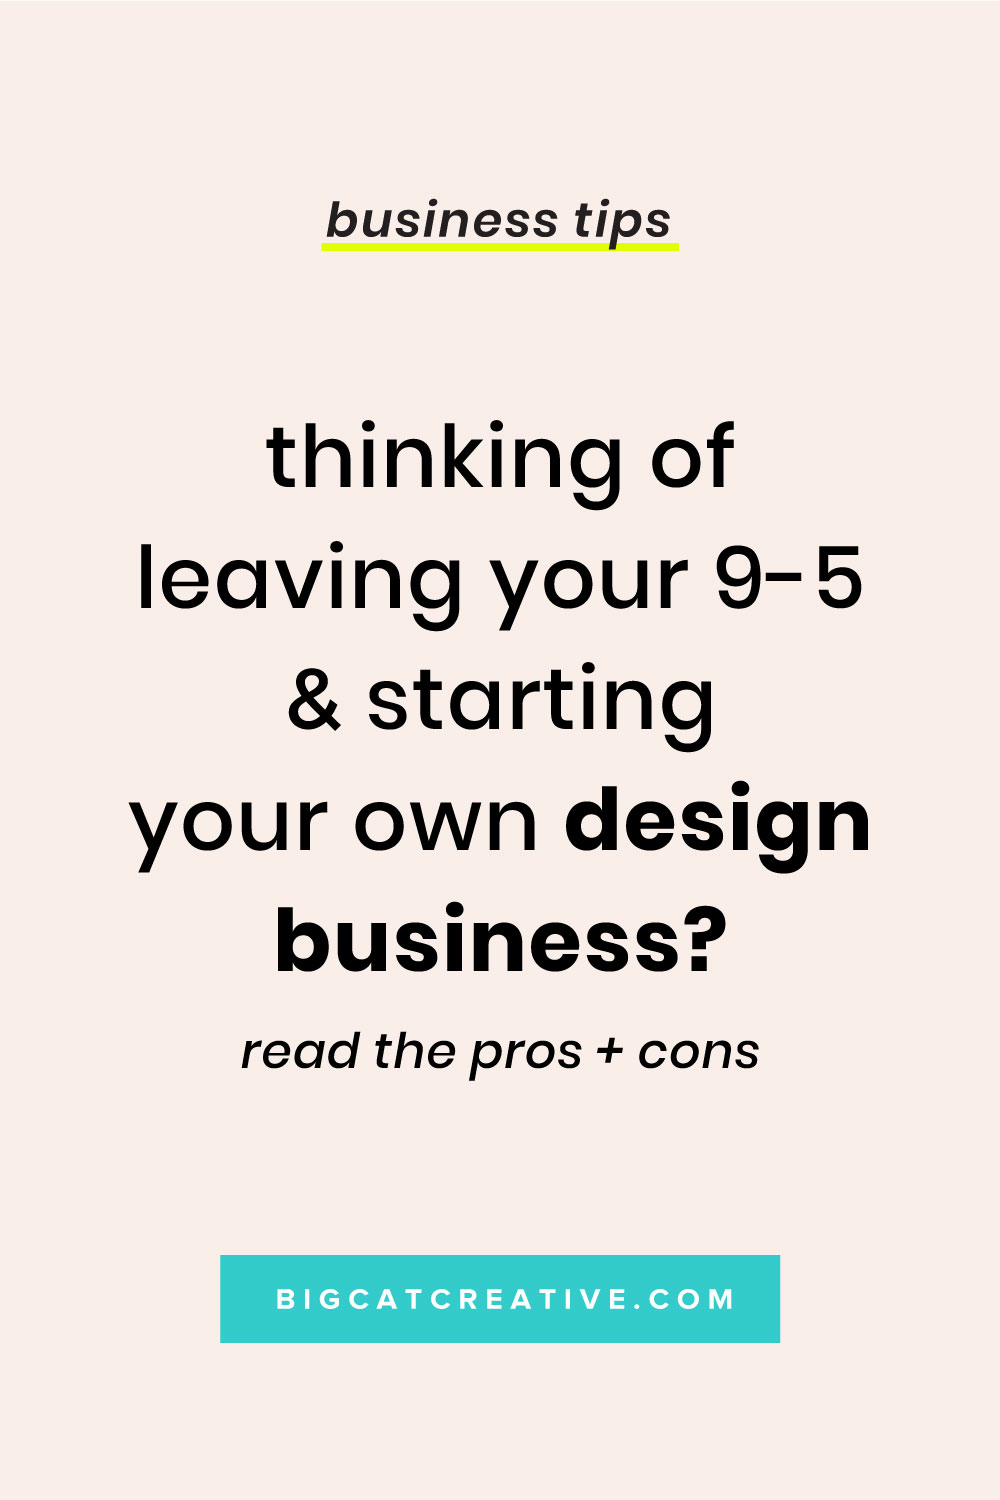 Ready to leave your 9-5 and start your own design business? Check out my list of pros and cons, and things you should consider before taking the leap | Graphic Design Business Tips by Big Cat Creative | Design, Designer, Freelancer, Graphic Design, Design Business, Online Design Business, Getting Design Clients, Design Tips